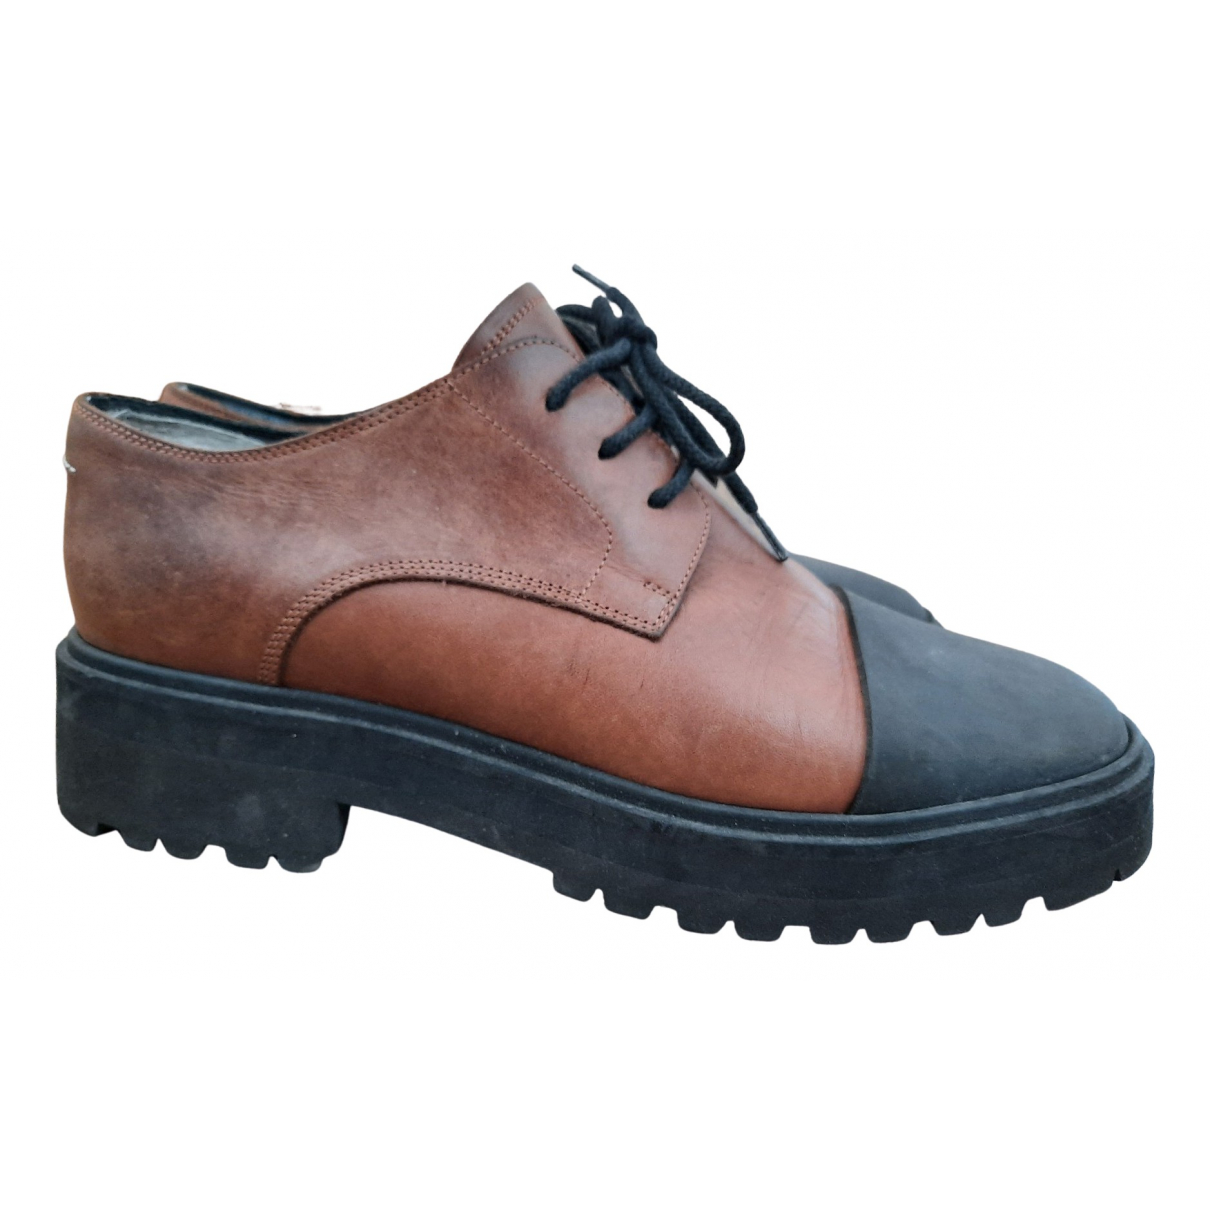 Mm6 N Brown Leather Lace ups for Women 38.5 EU